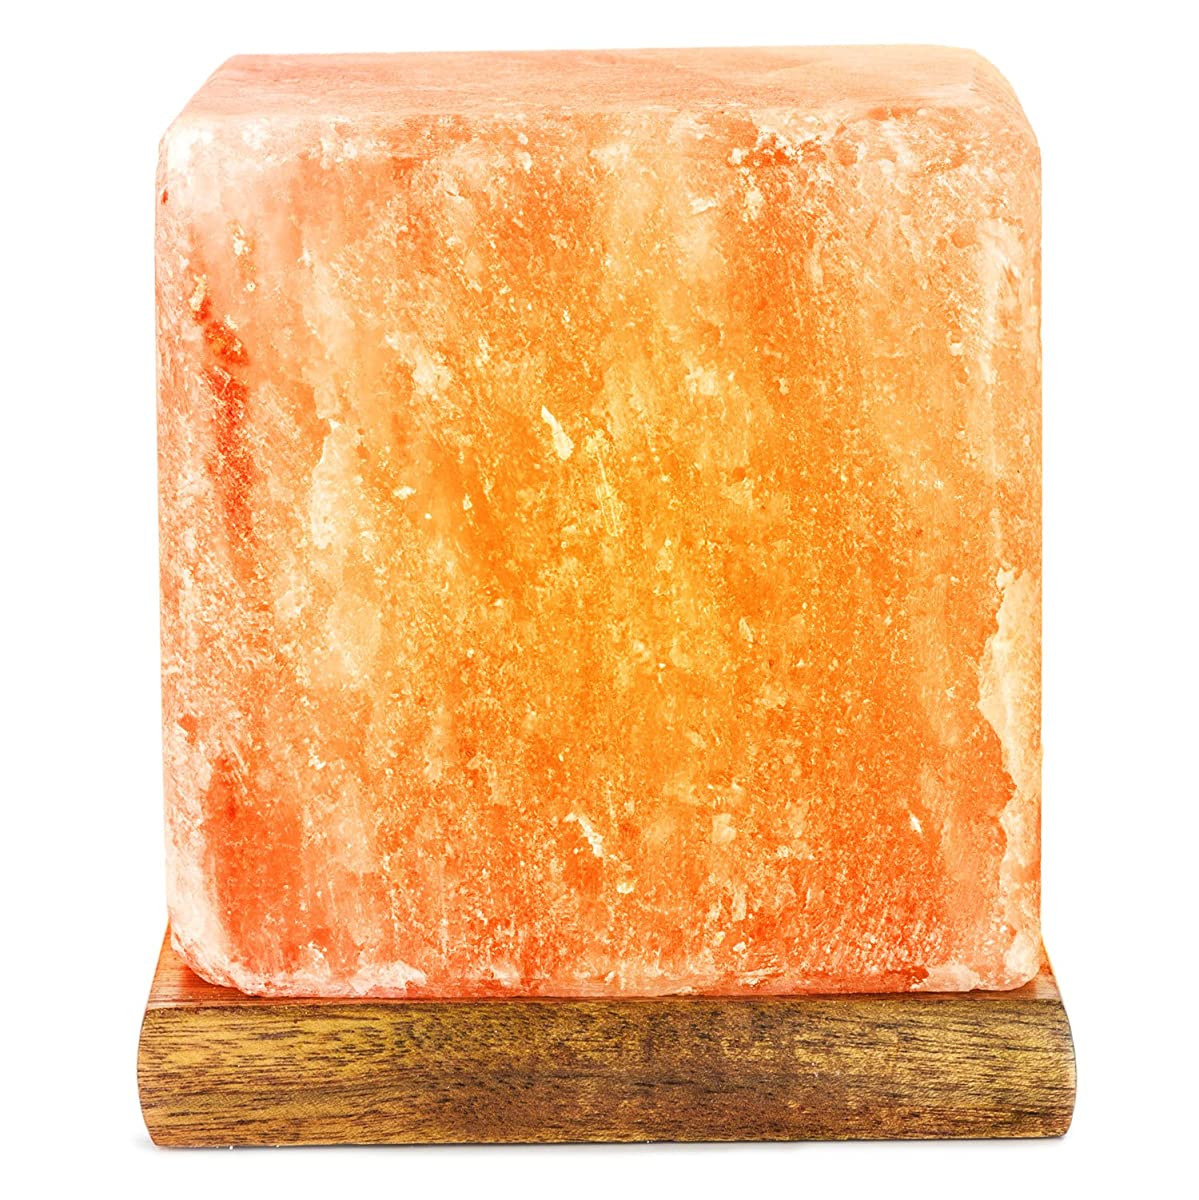 HemingWeigh Salt Lamp Rock Salt Cube Lamp 12 Cm on Wood Base, Electric Wire and Bulb Included [Hand Crafted Salt Lamp]